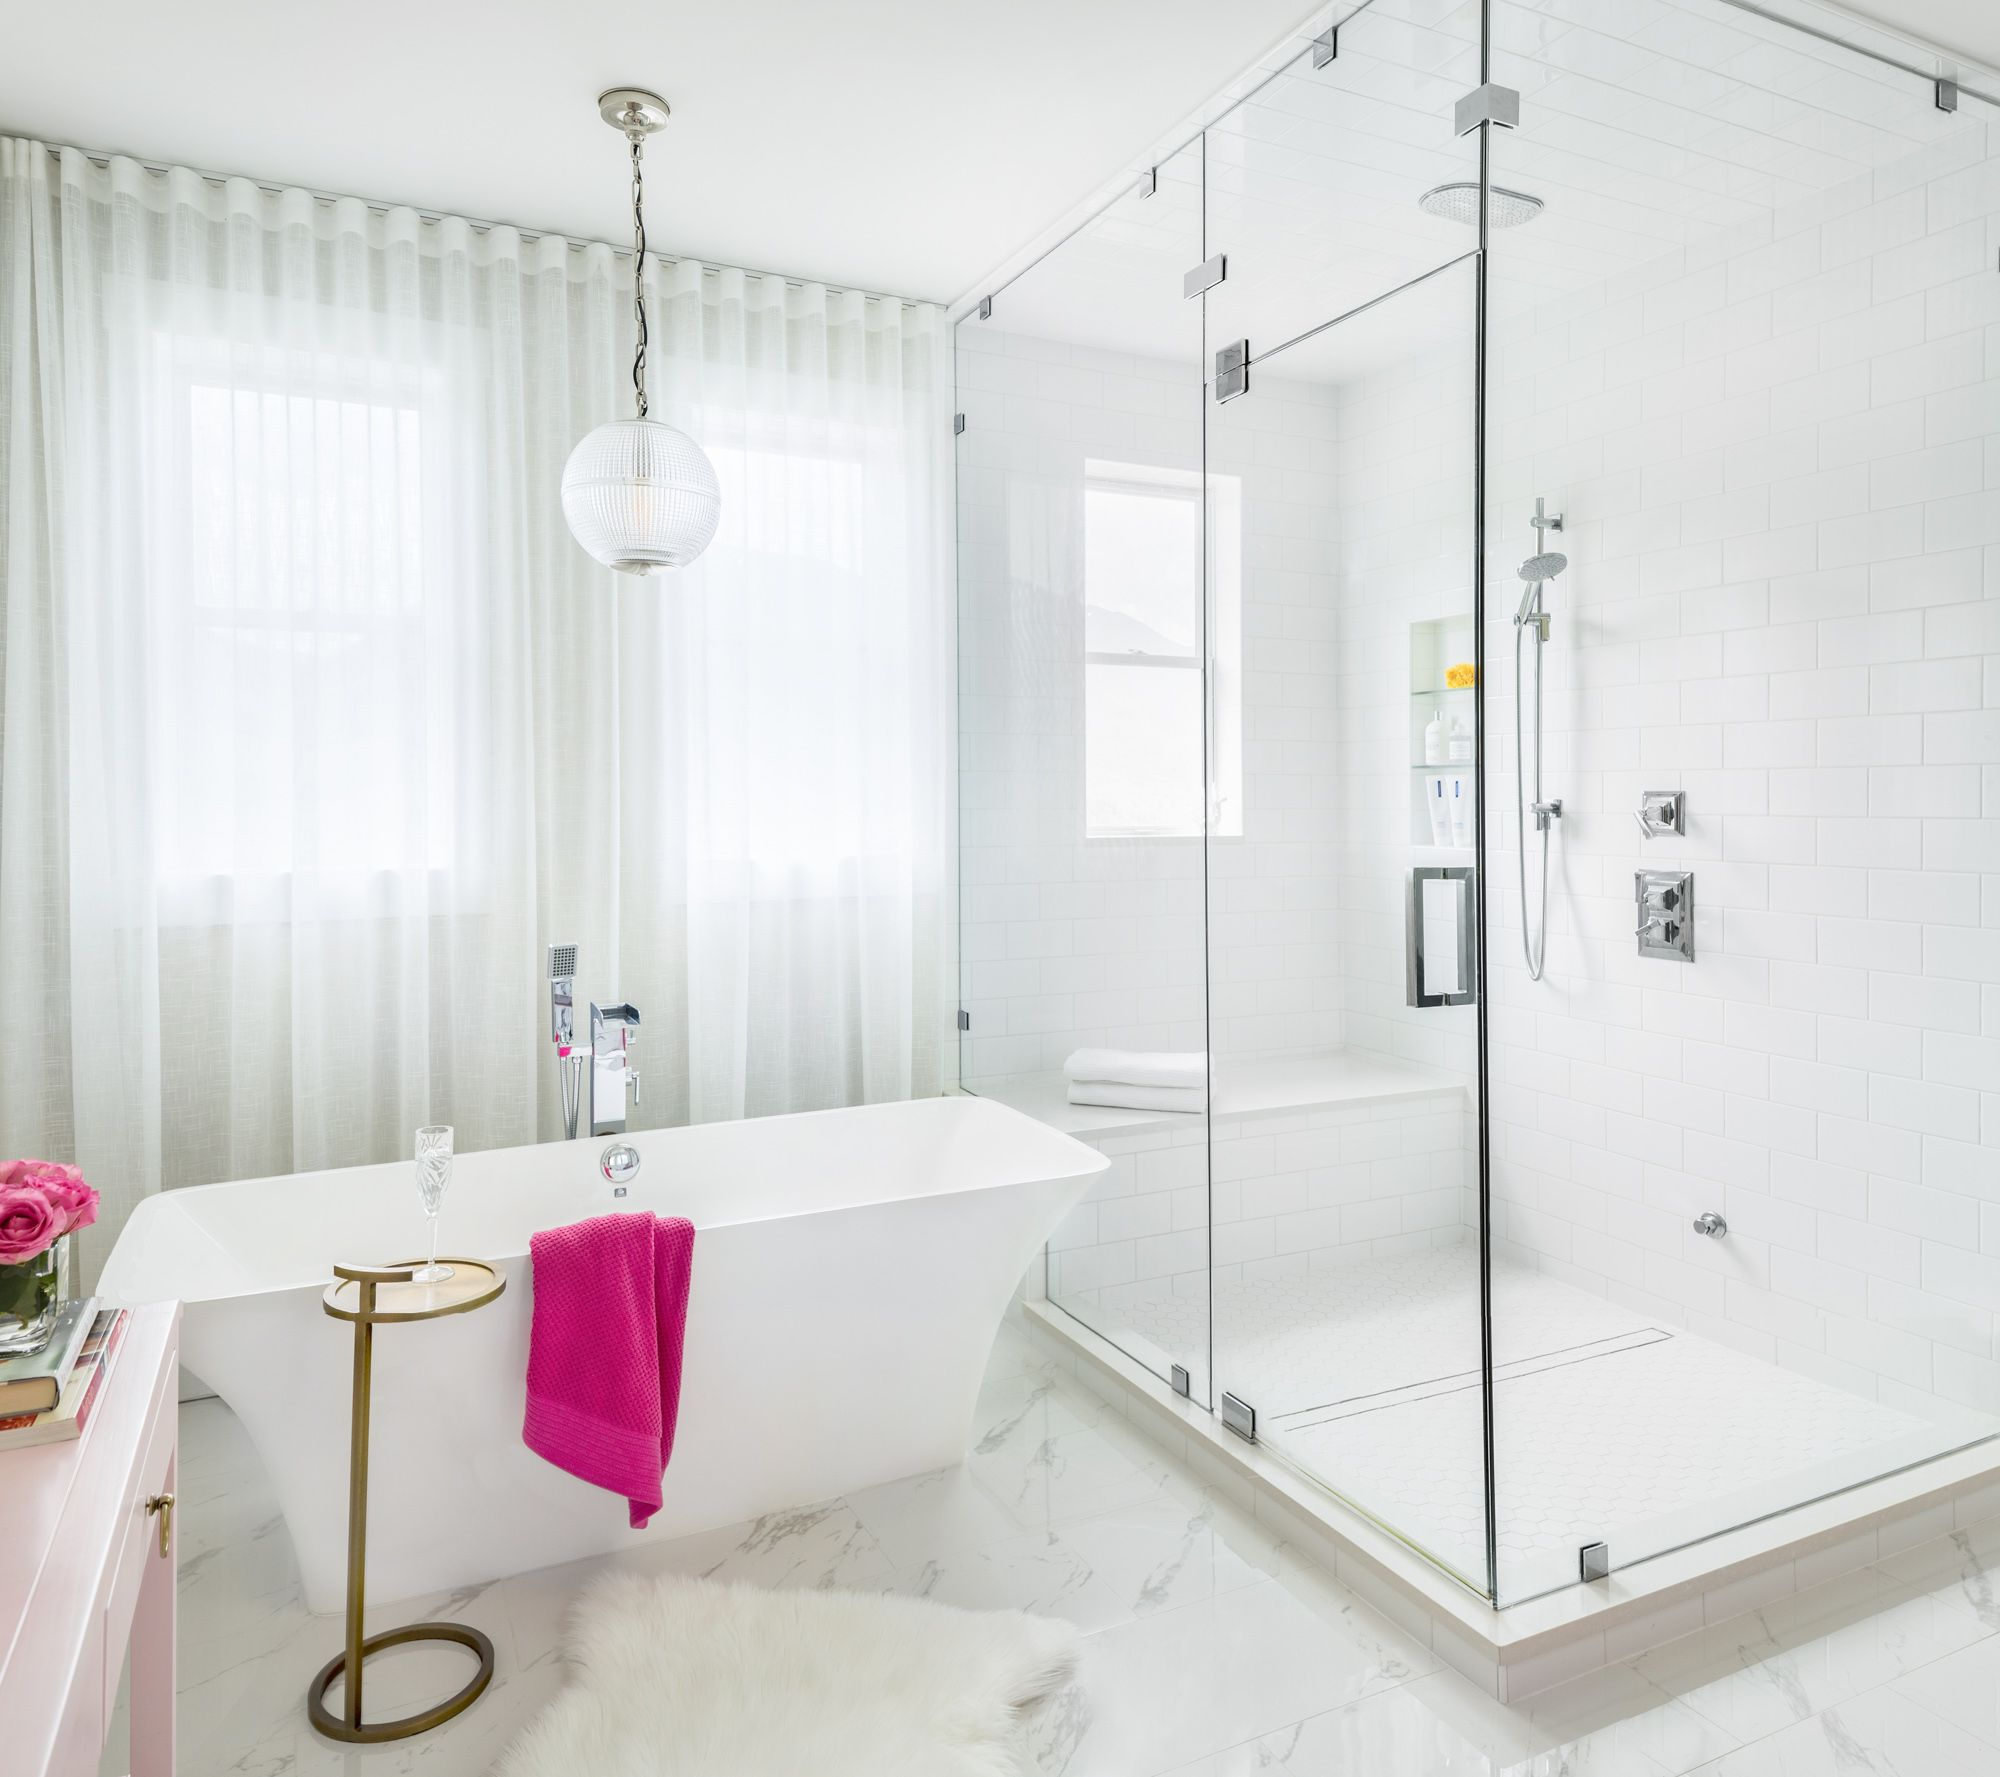 Master bedroom ensuite ideas  Pink and Navy Master Bedroom  Ensuite Before u After  Navy master